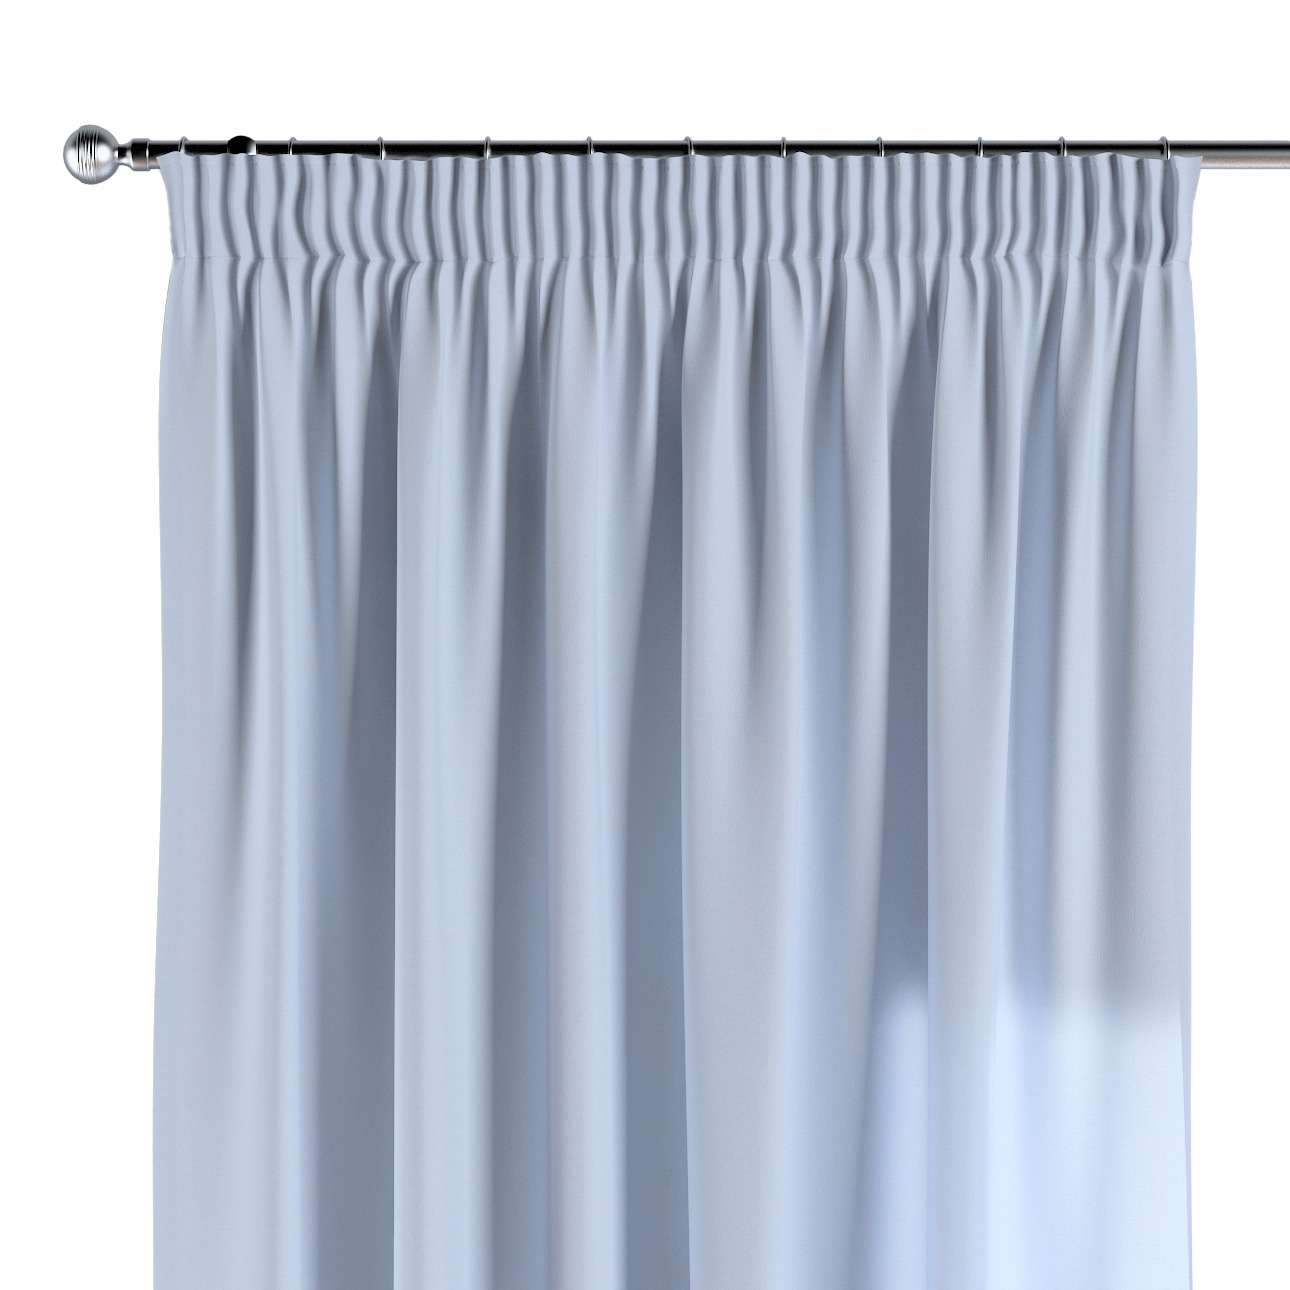 Pencil pleat curtains 130 x 260 cm (51 x 102 inch) in collection Loneta , fabric: 133-35